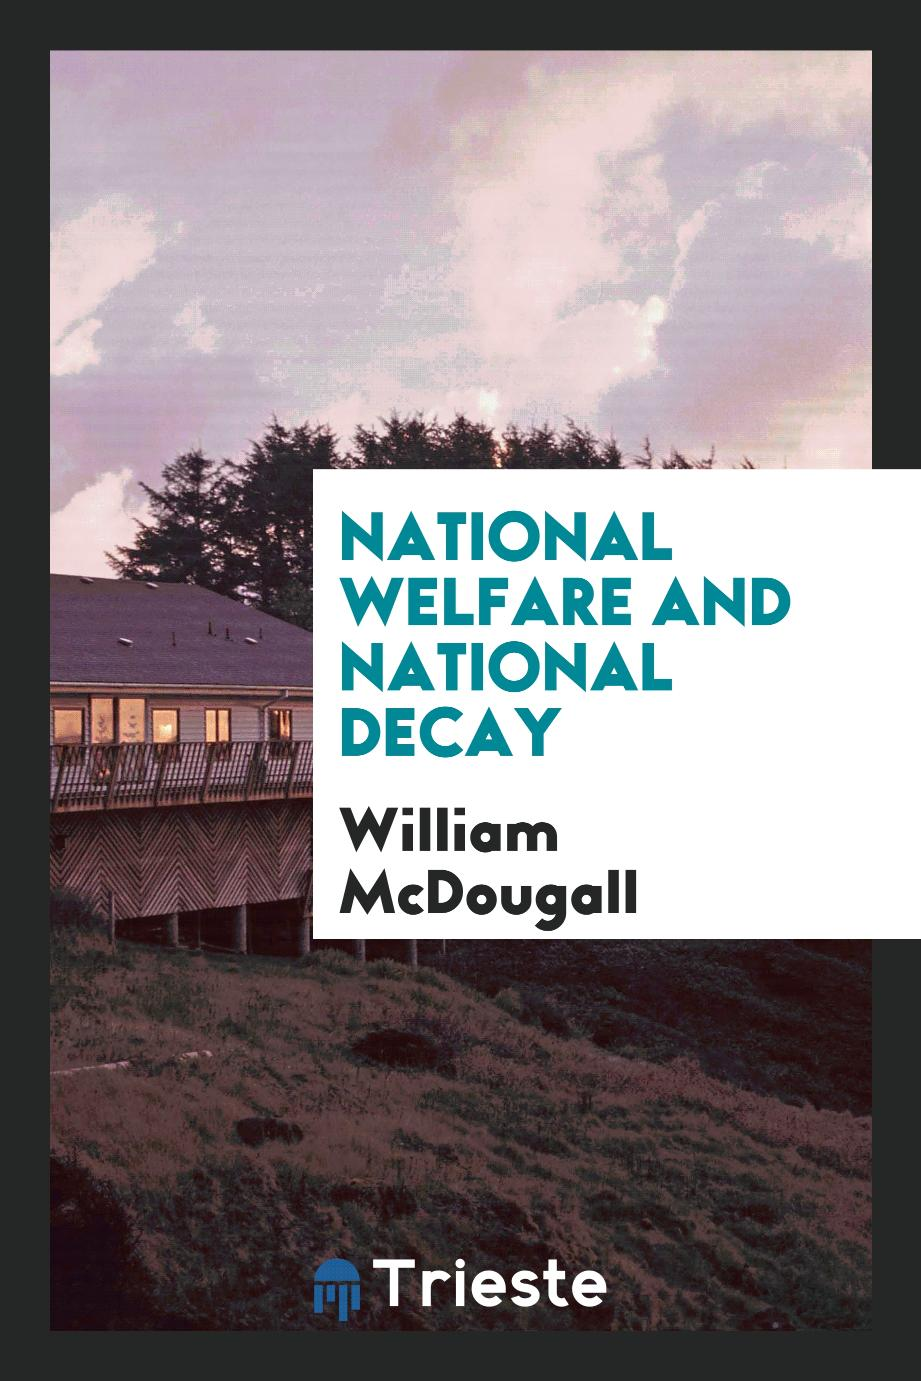 National welfare and national decay